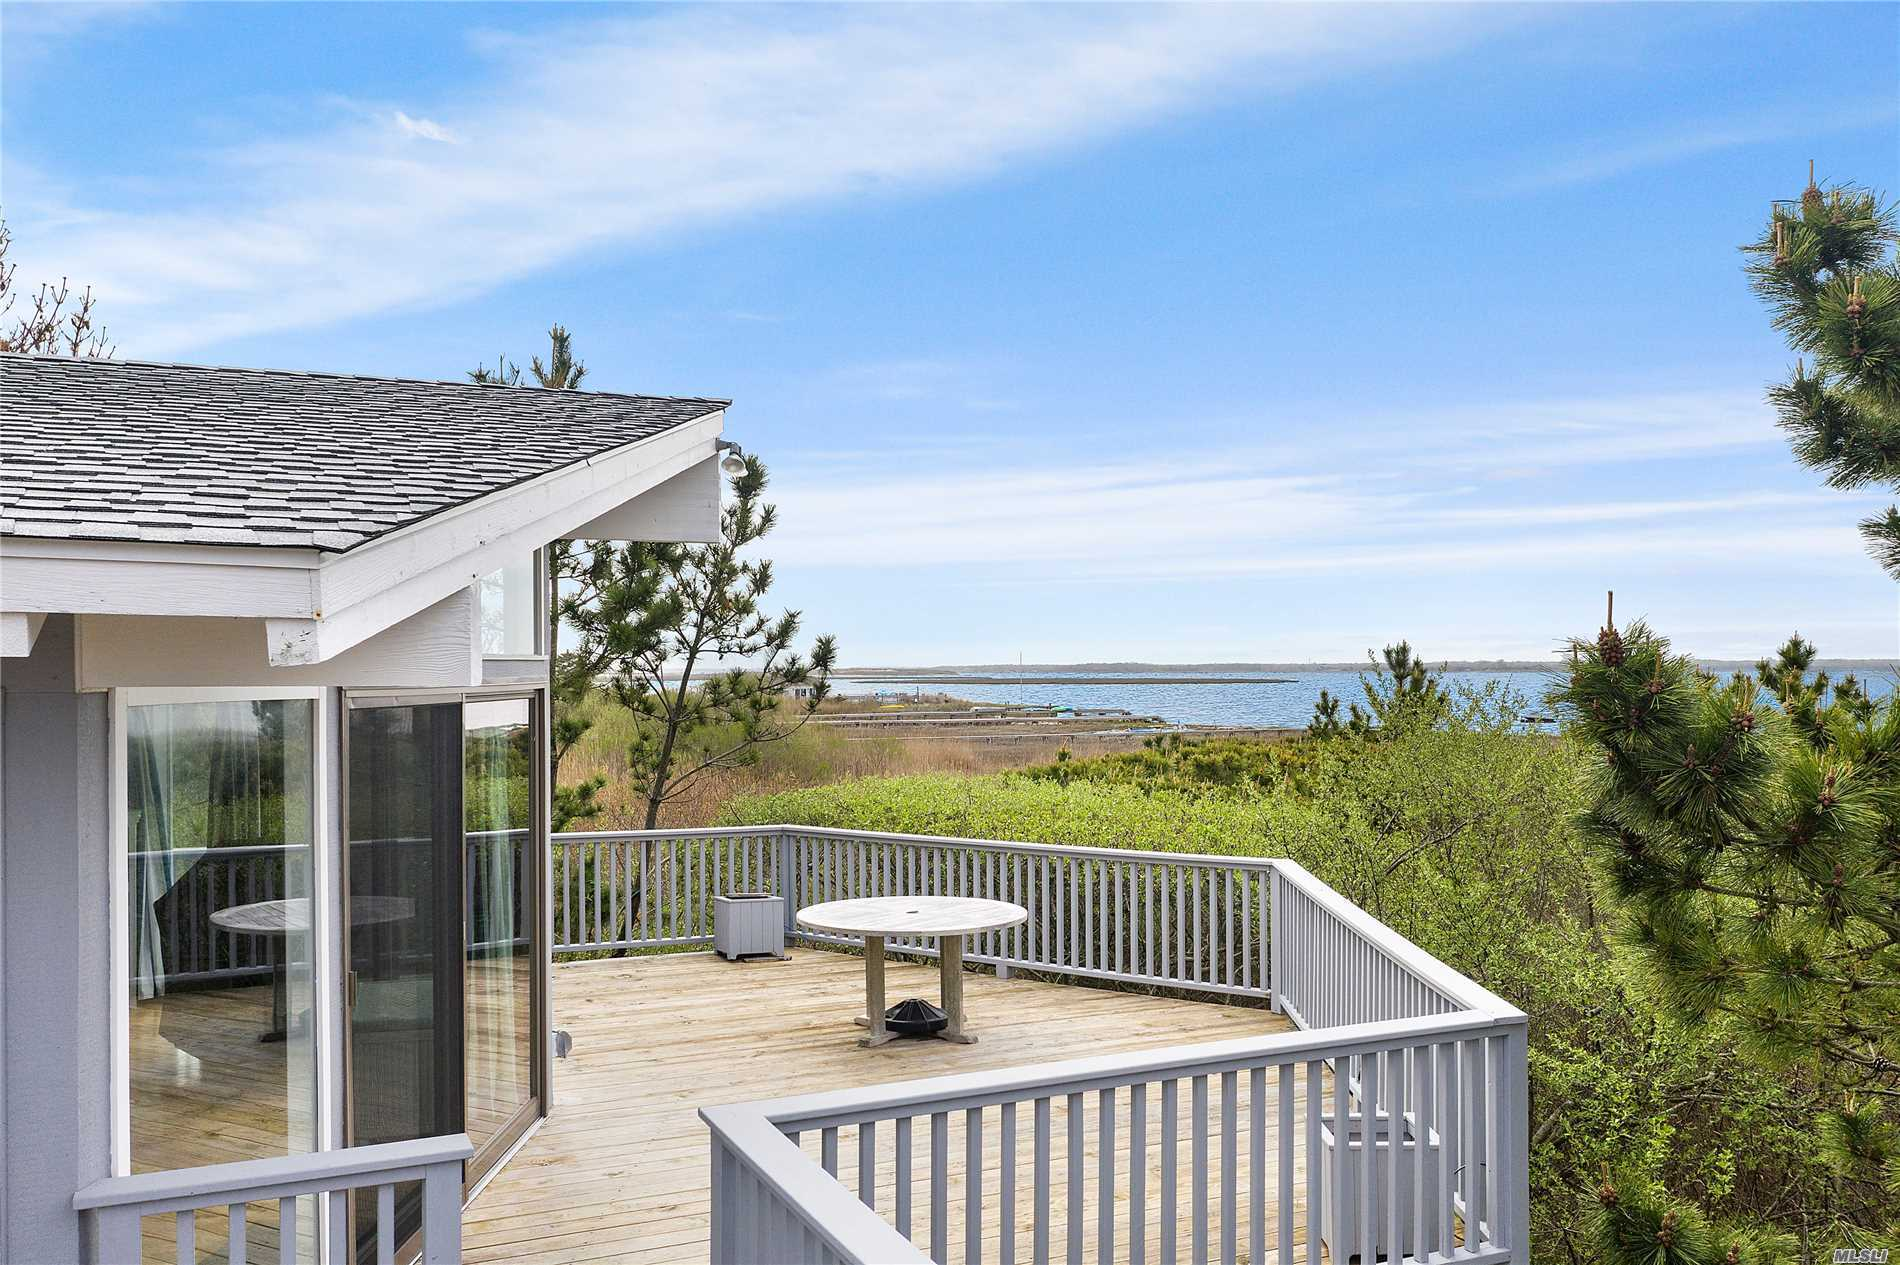 Offering Stunning View Of Moriches Bay, This Raised Ranch Is The Perfect Summer Getaway Or Investment. The Open Floor Plan Affords A Large Eat-In-Kitchen/Family Room With Cathedral Ceilings, Master Suite, 3 Guest Rooms & 2 Full Baths. Enjoy Summer Sunsets & Ocean & Bay Access.